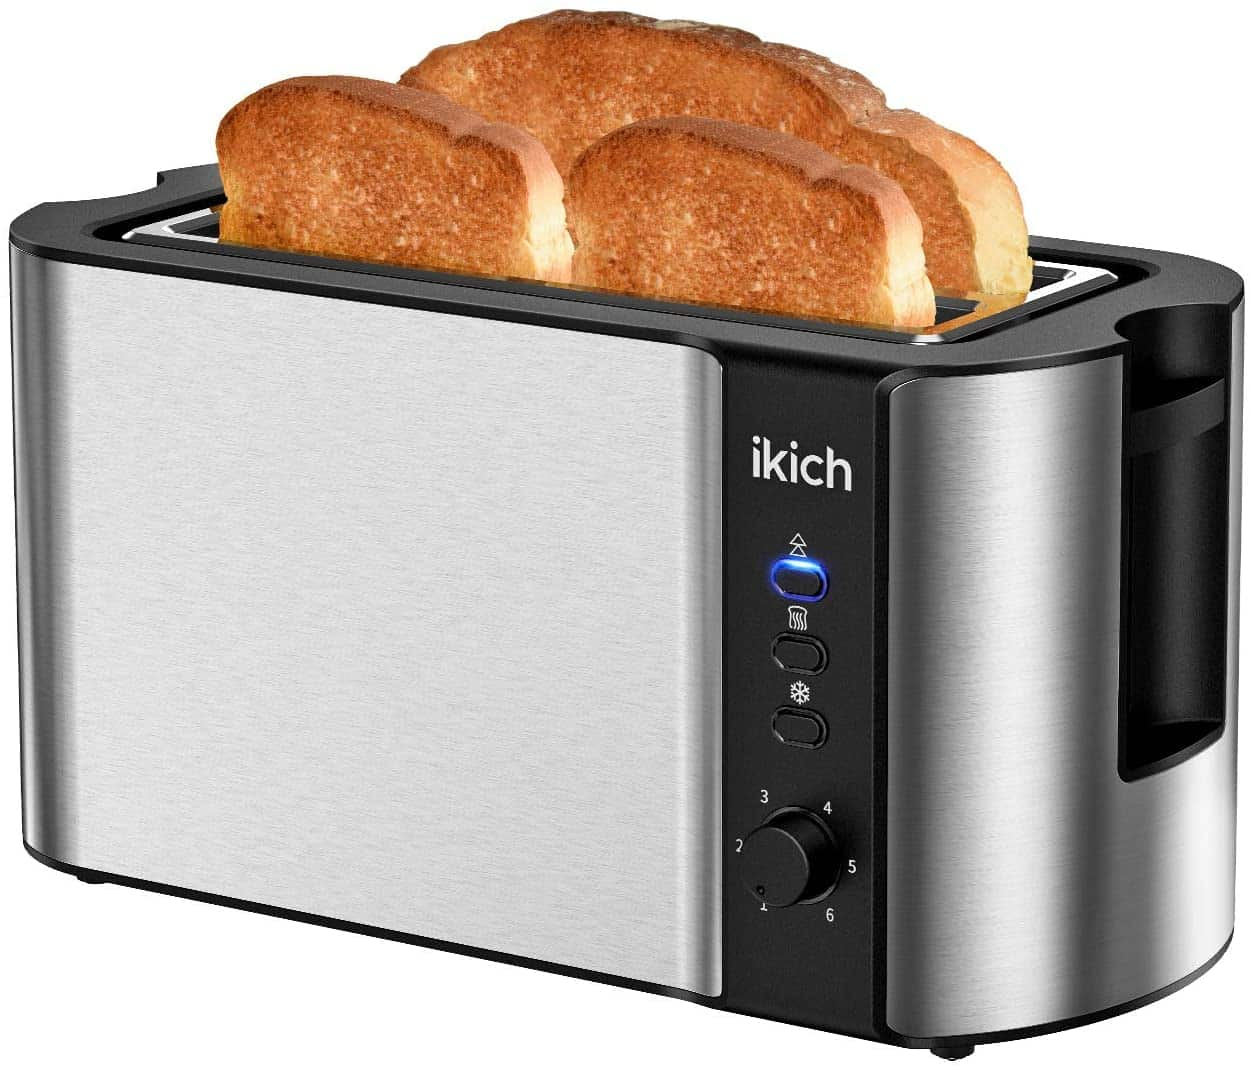 IKICH Toaster 4 Slice, Toaster 2 Long Slot Stainless Steel